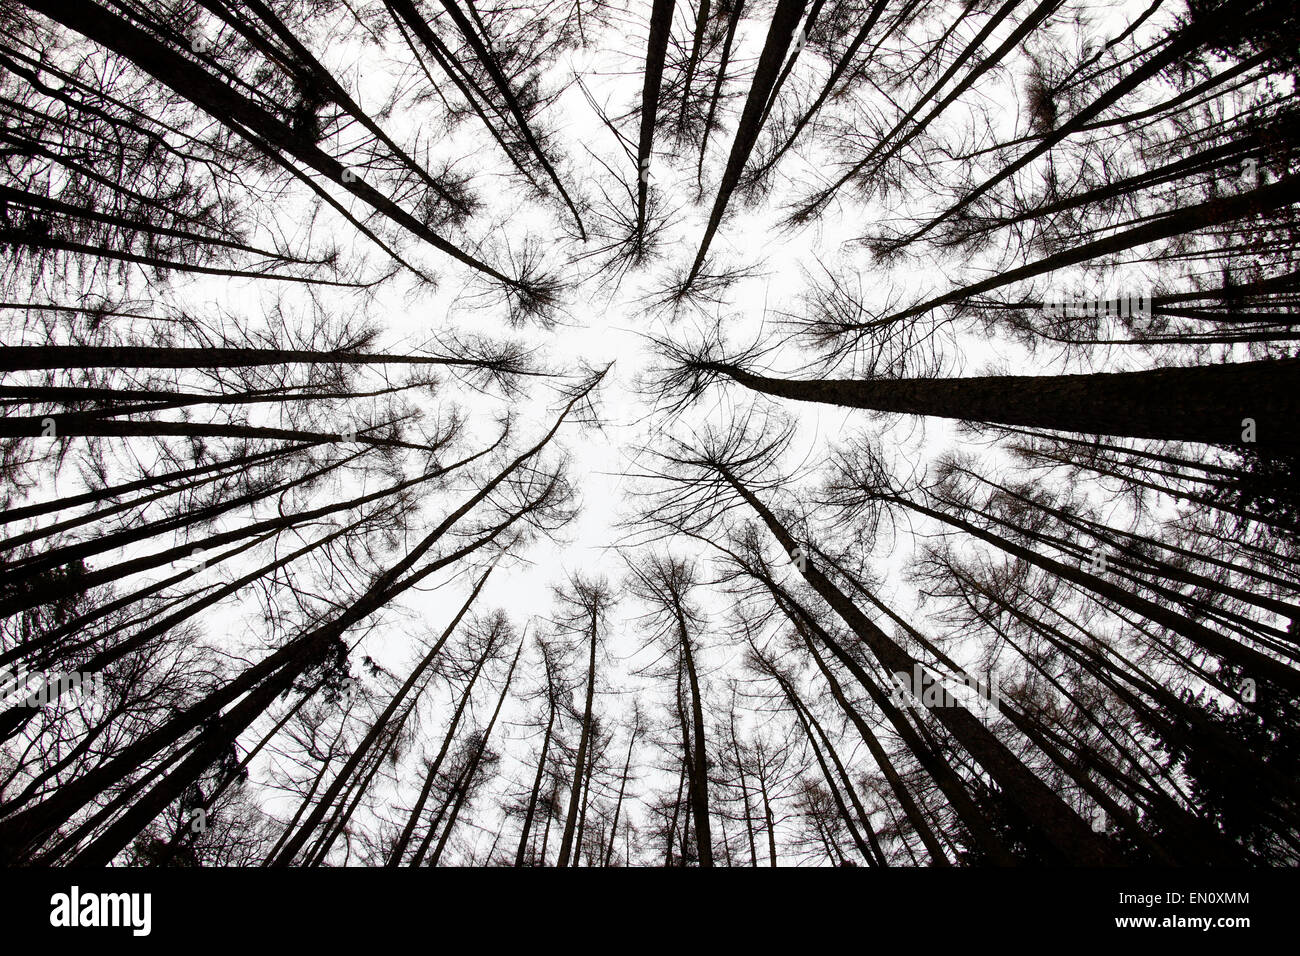 forest view from below - fish-eye lens view - Stock Image